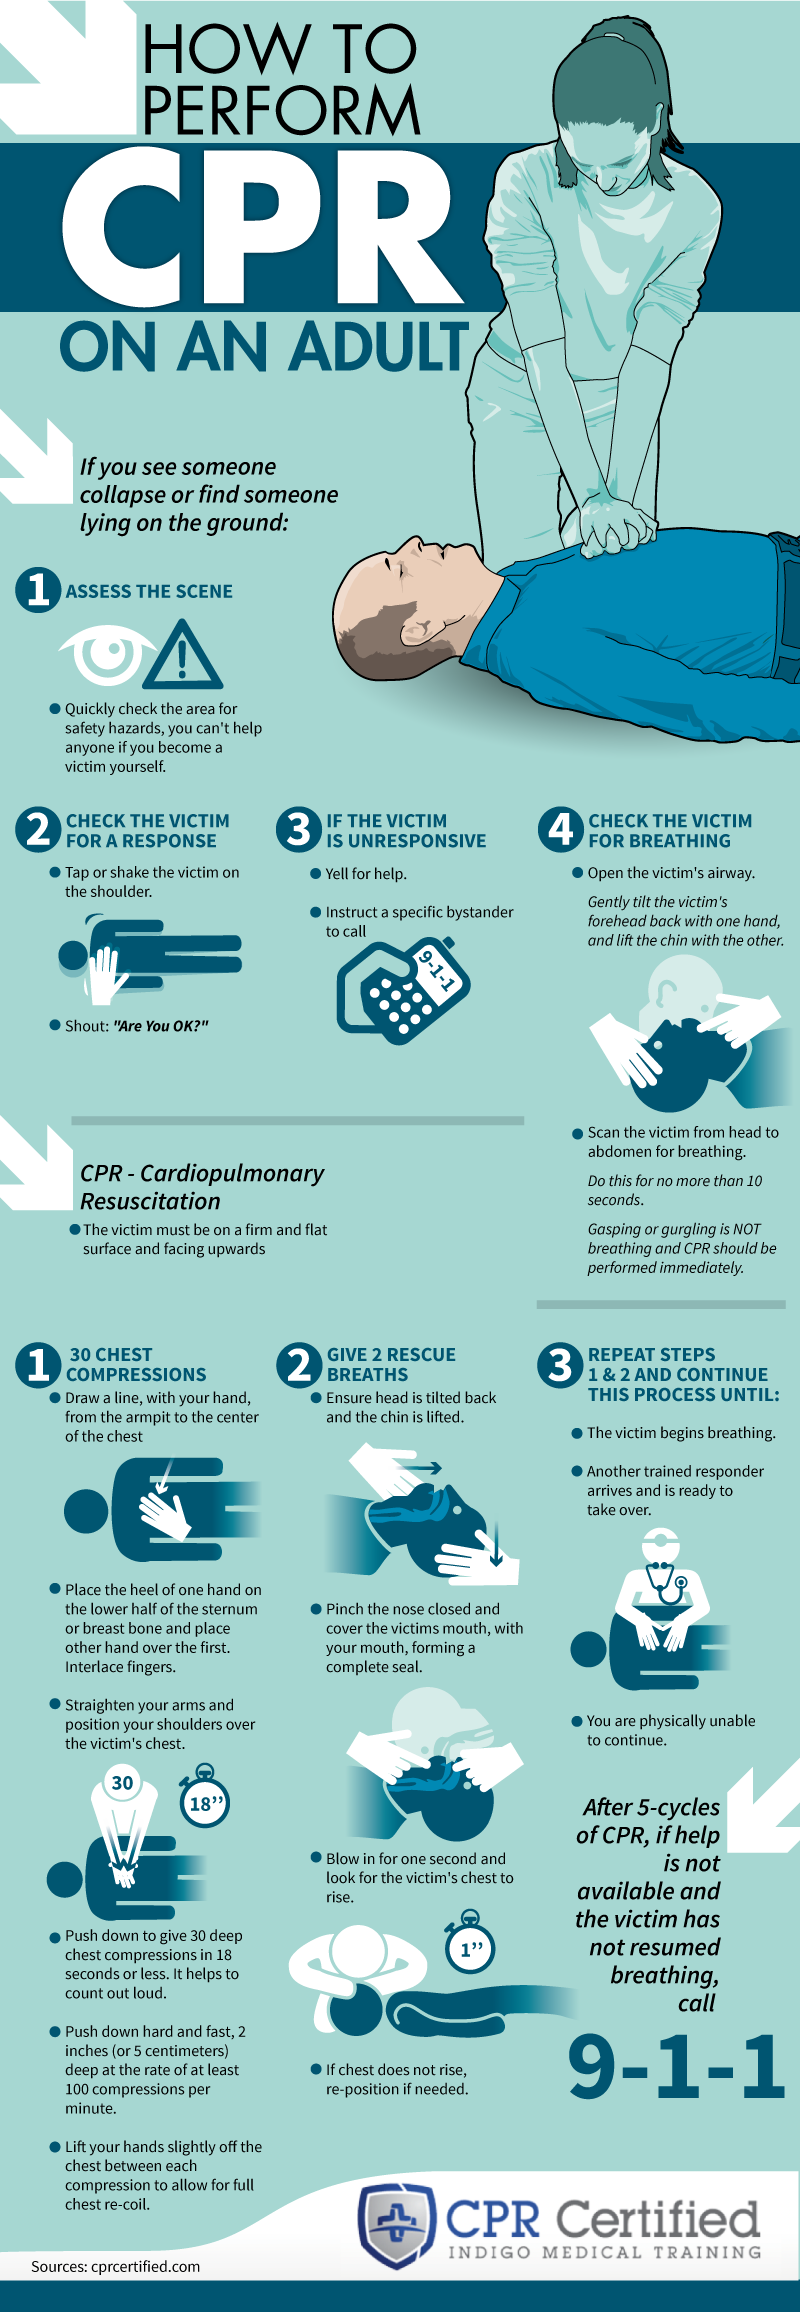 How to Perform Adult CPR - CPRCertified.com - Infographic